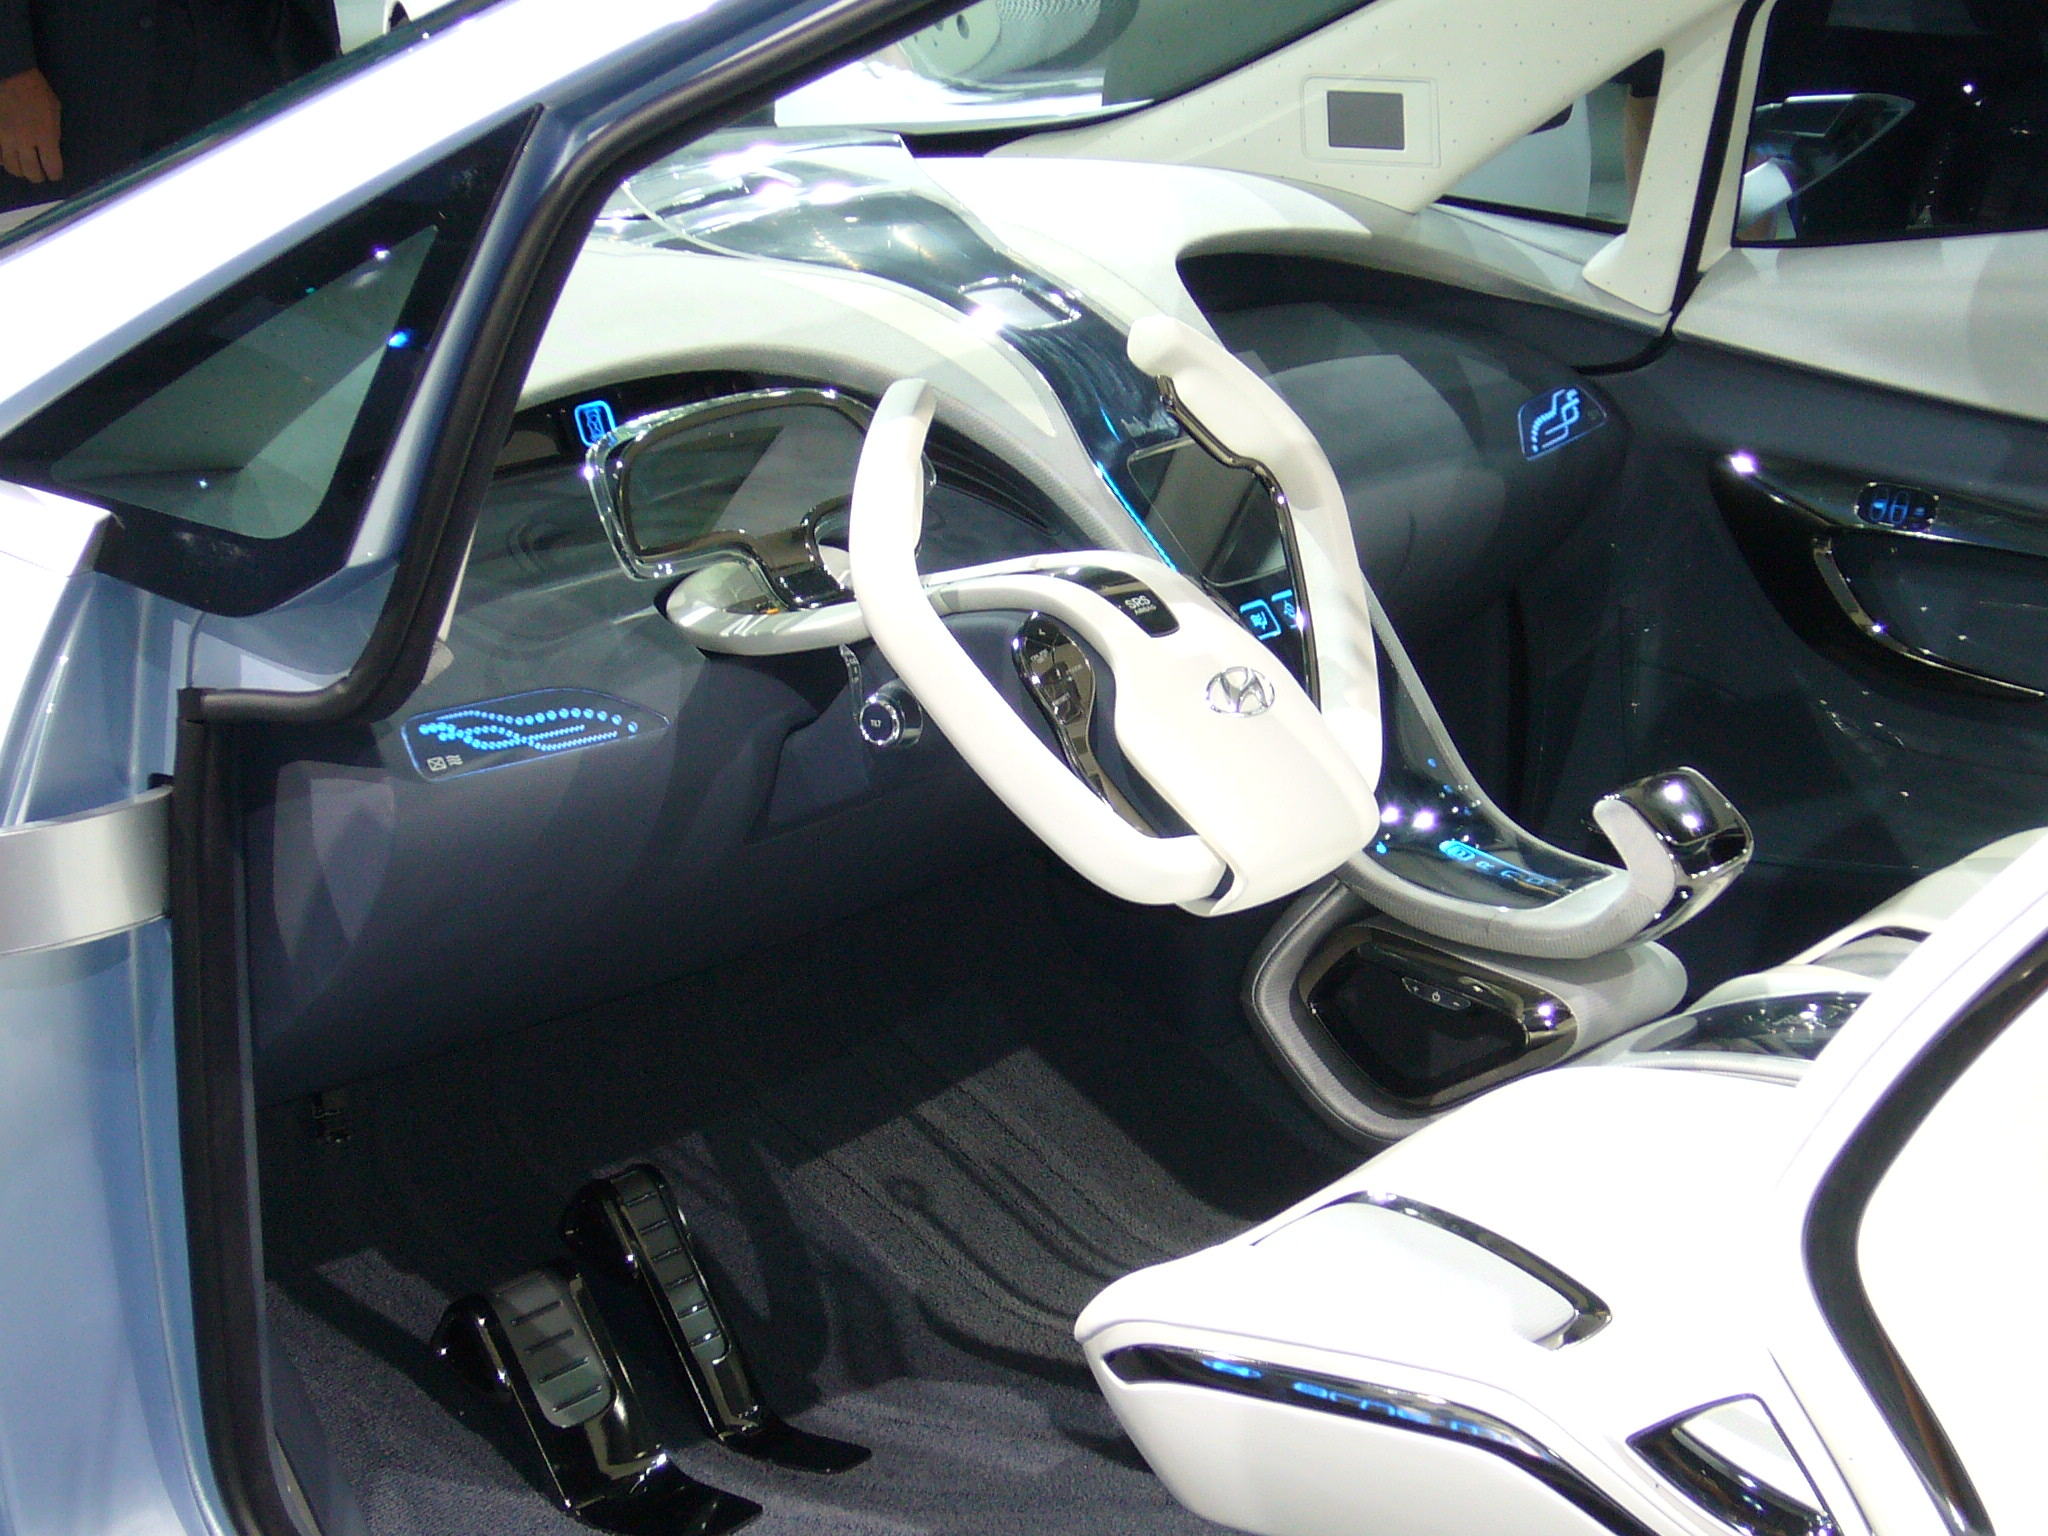 The concept car from Hyunday